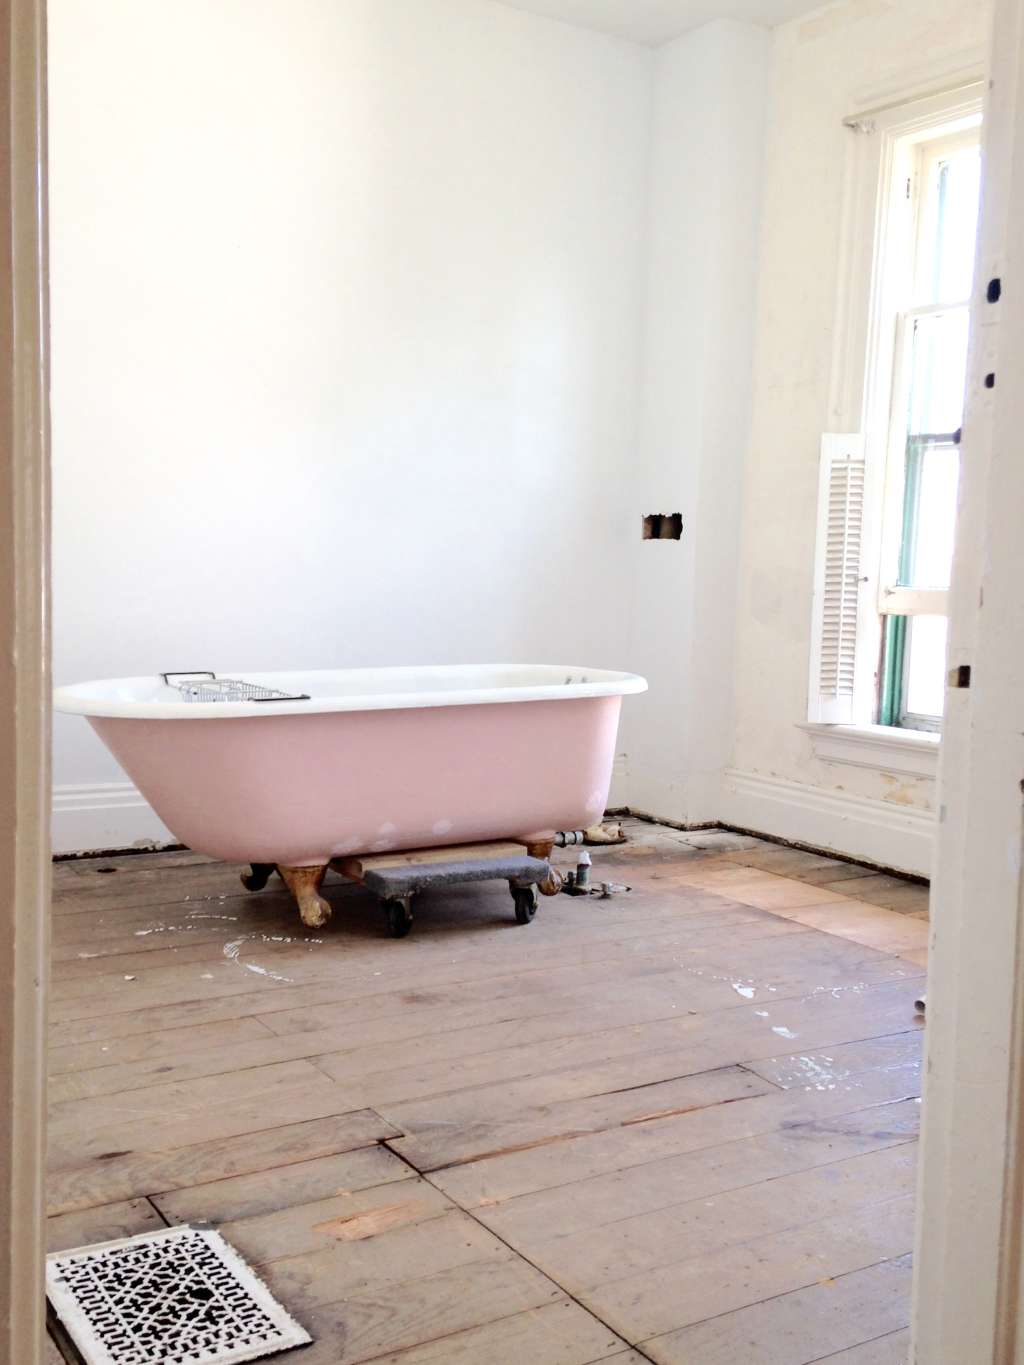 How to Sandblast & Refinish A Vintage Clawfoot Tub   Apartment Therapy